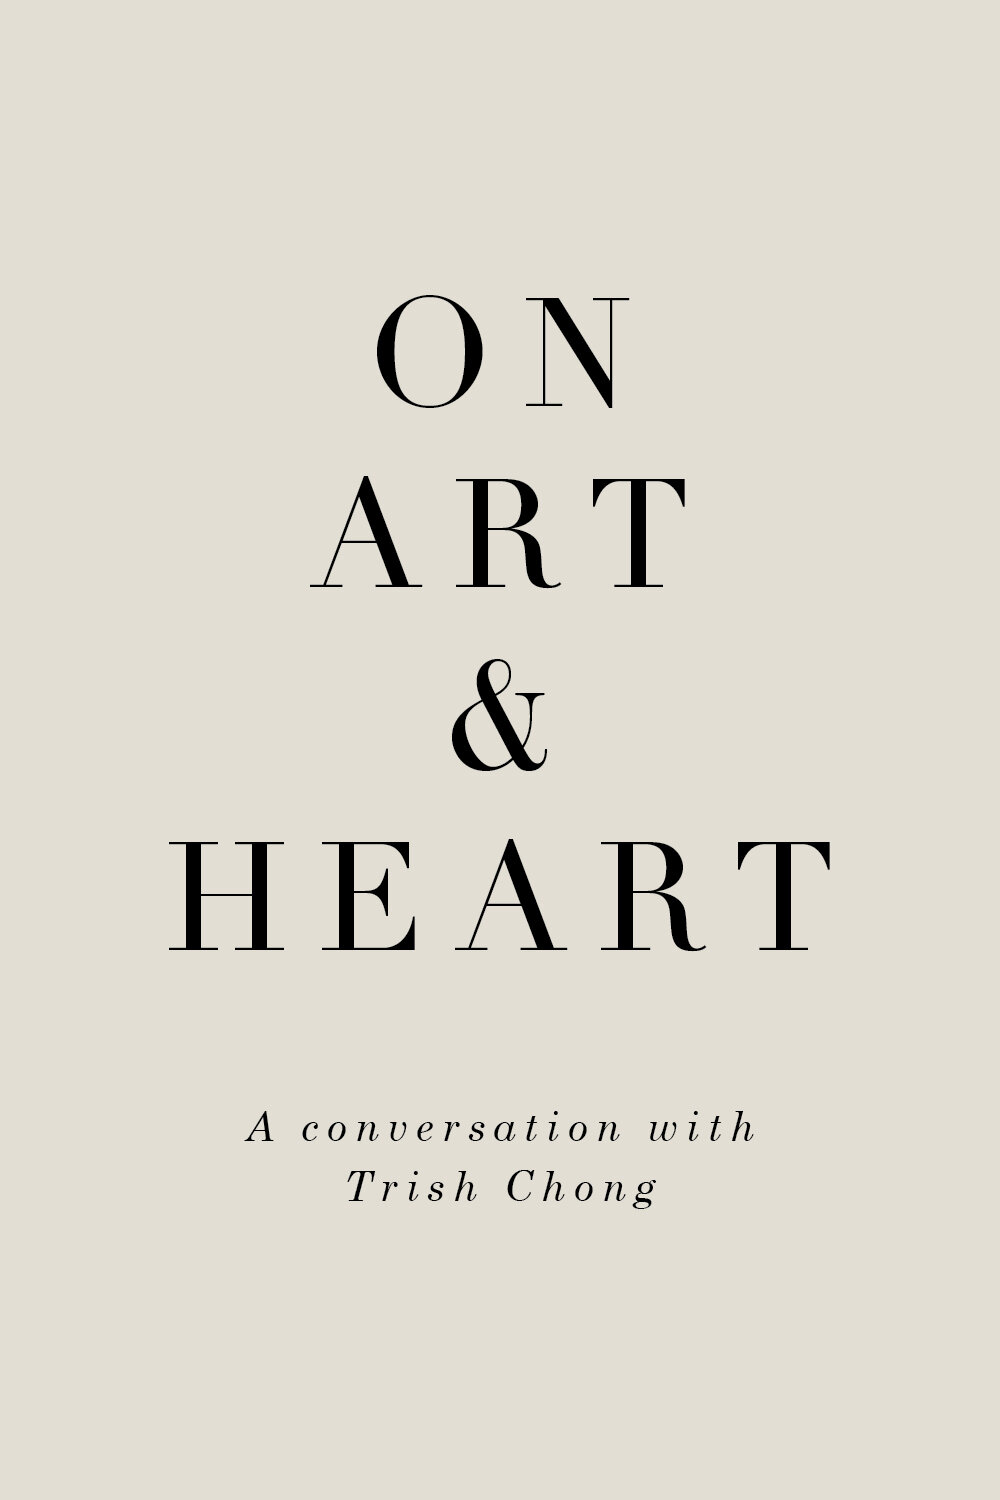 On Art & Heart—Trish Chong (A series of conversations edited by Rhonda.H.Y.Mason)